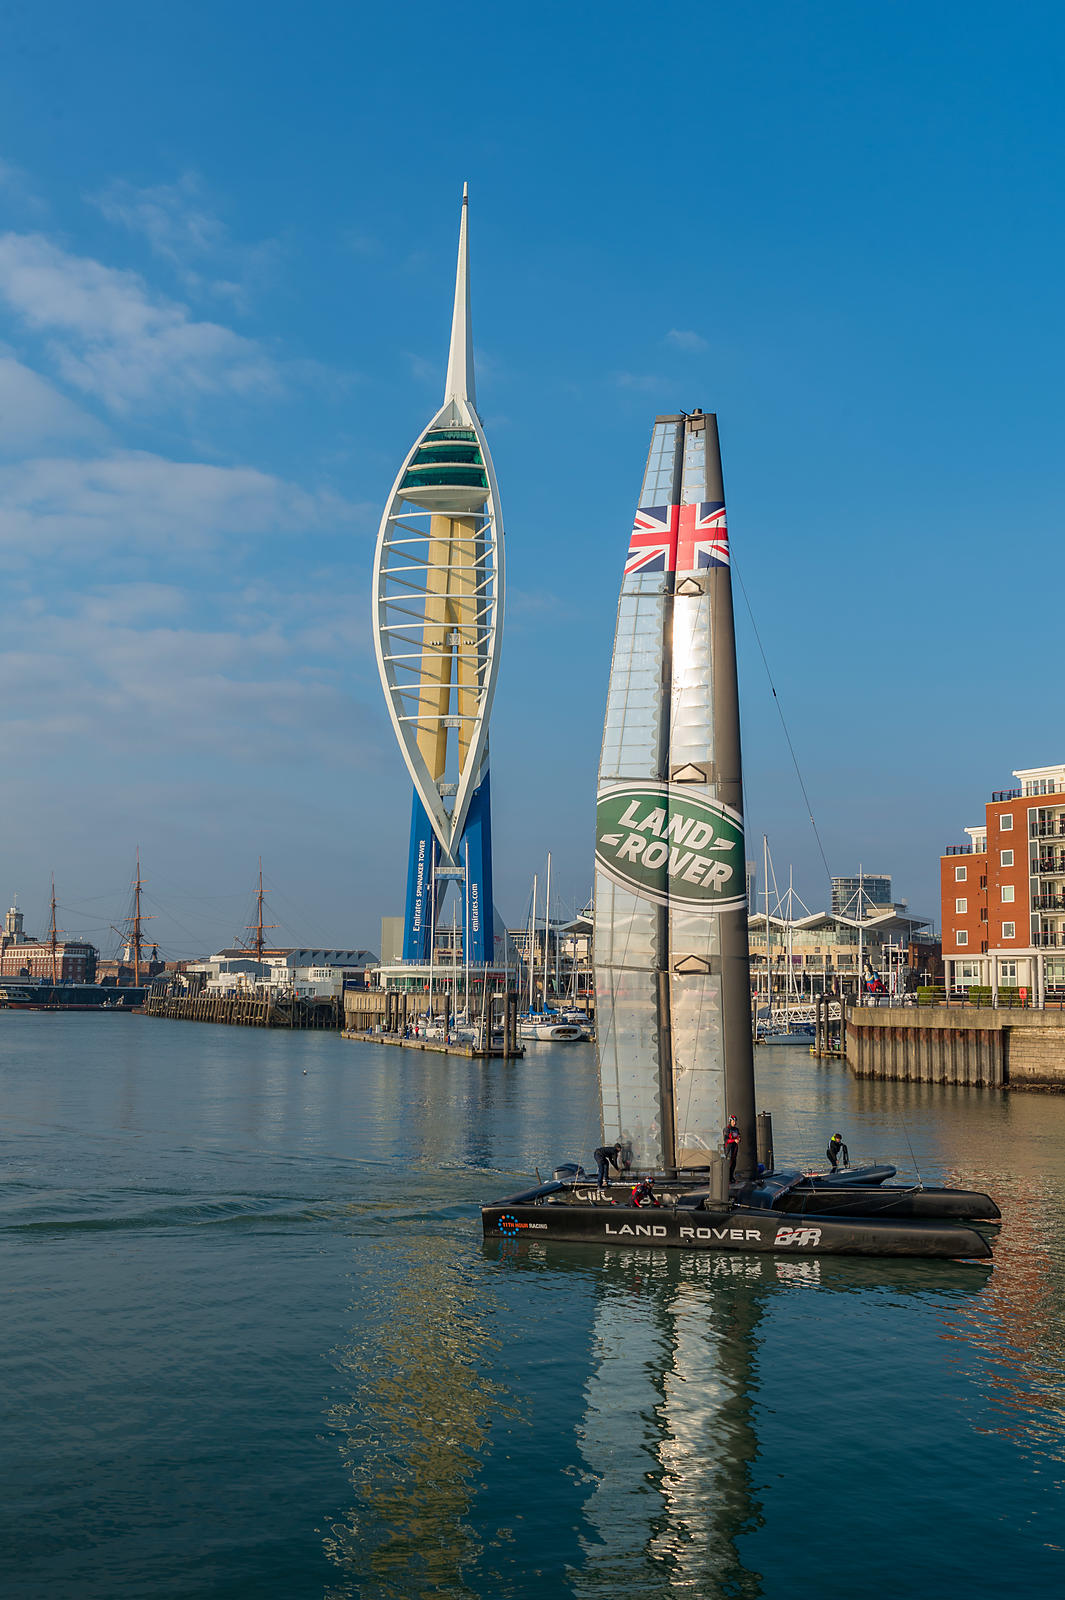 Team Land Rover UK in Portsmouth harbour